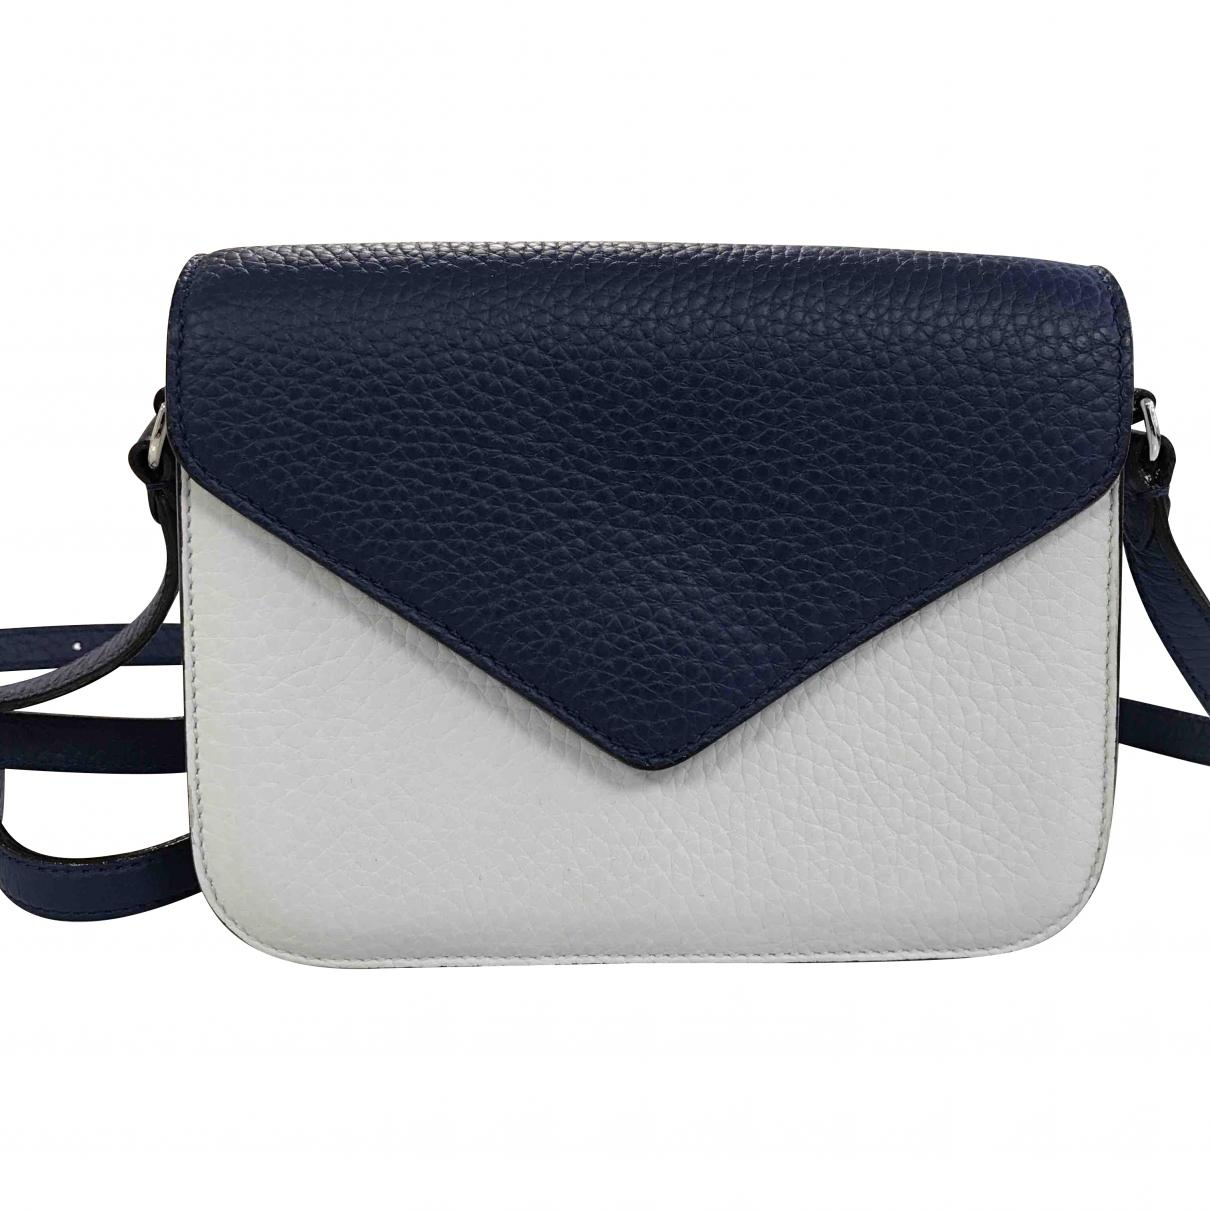 Dior Pre-owned - Leather crossbody bag jZlXg